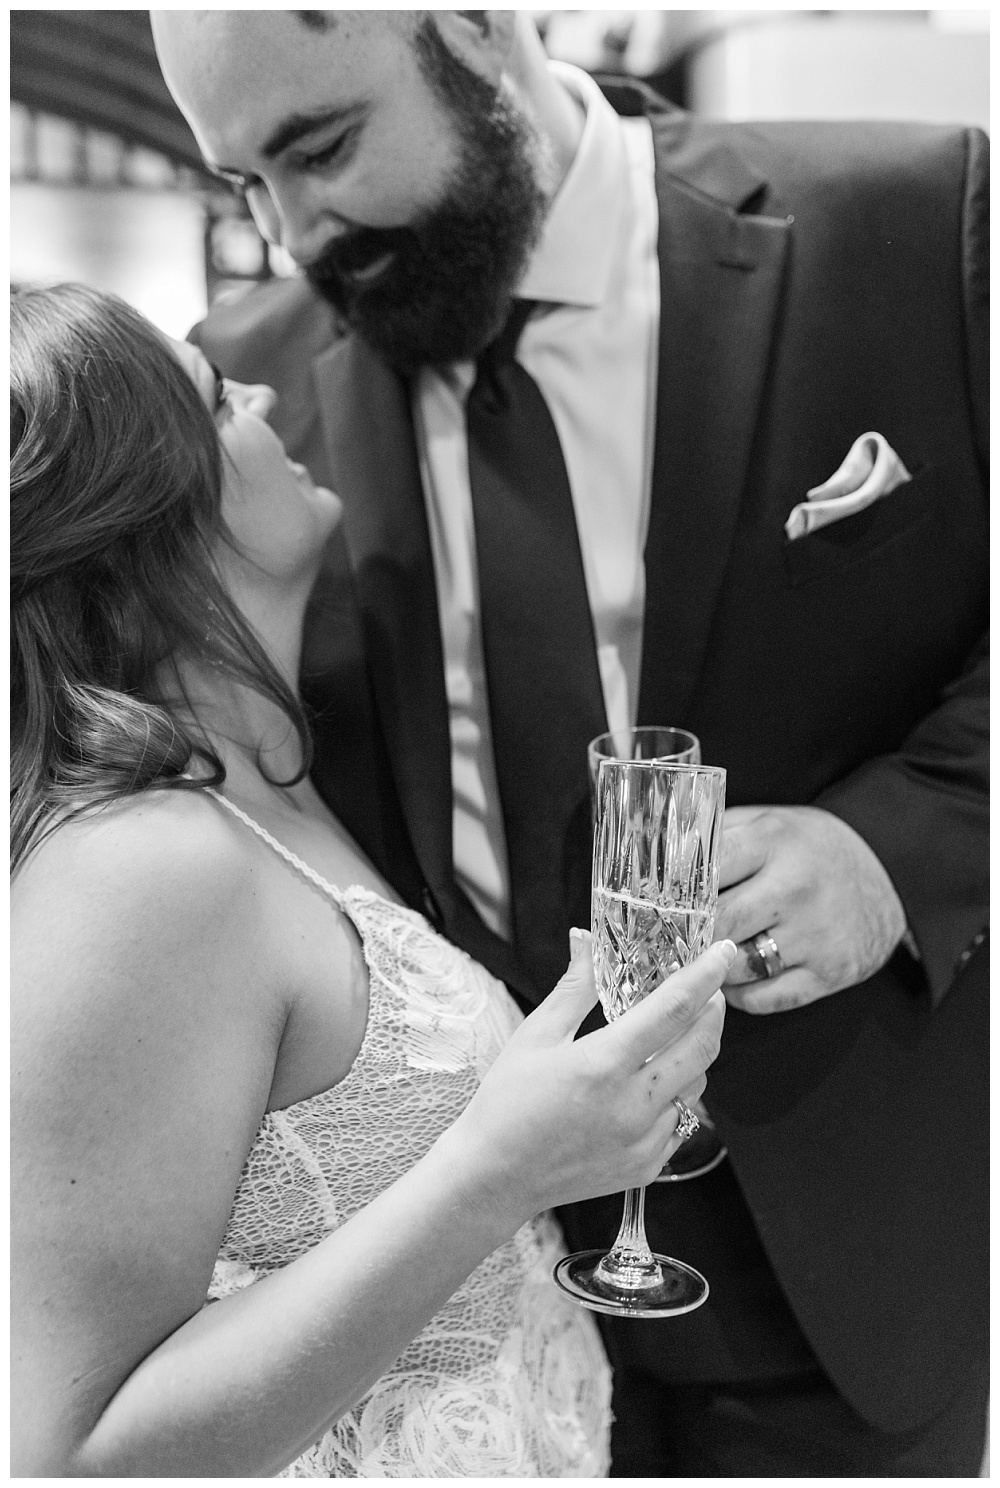 Stephanie Marie Photography Popoli Ristorante Wedding Cedar Rapids Iowa City Photographer Angela Tony Wilcox_0013.jpg